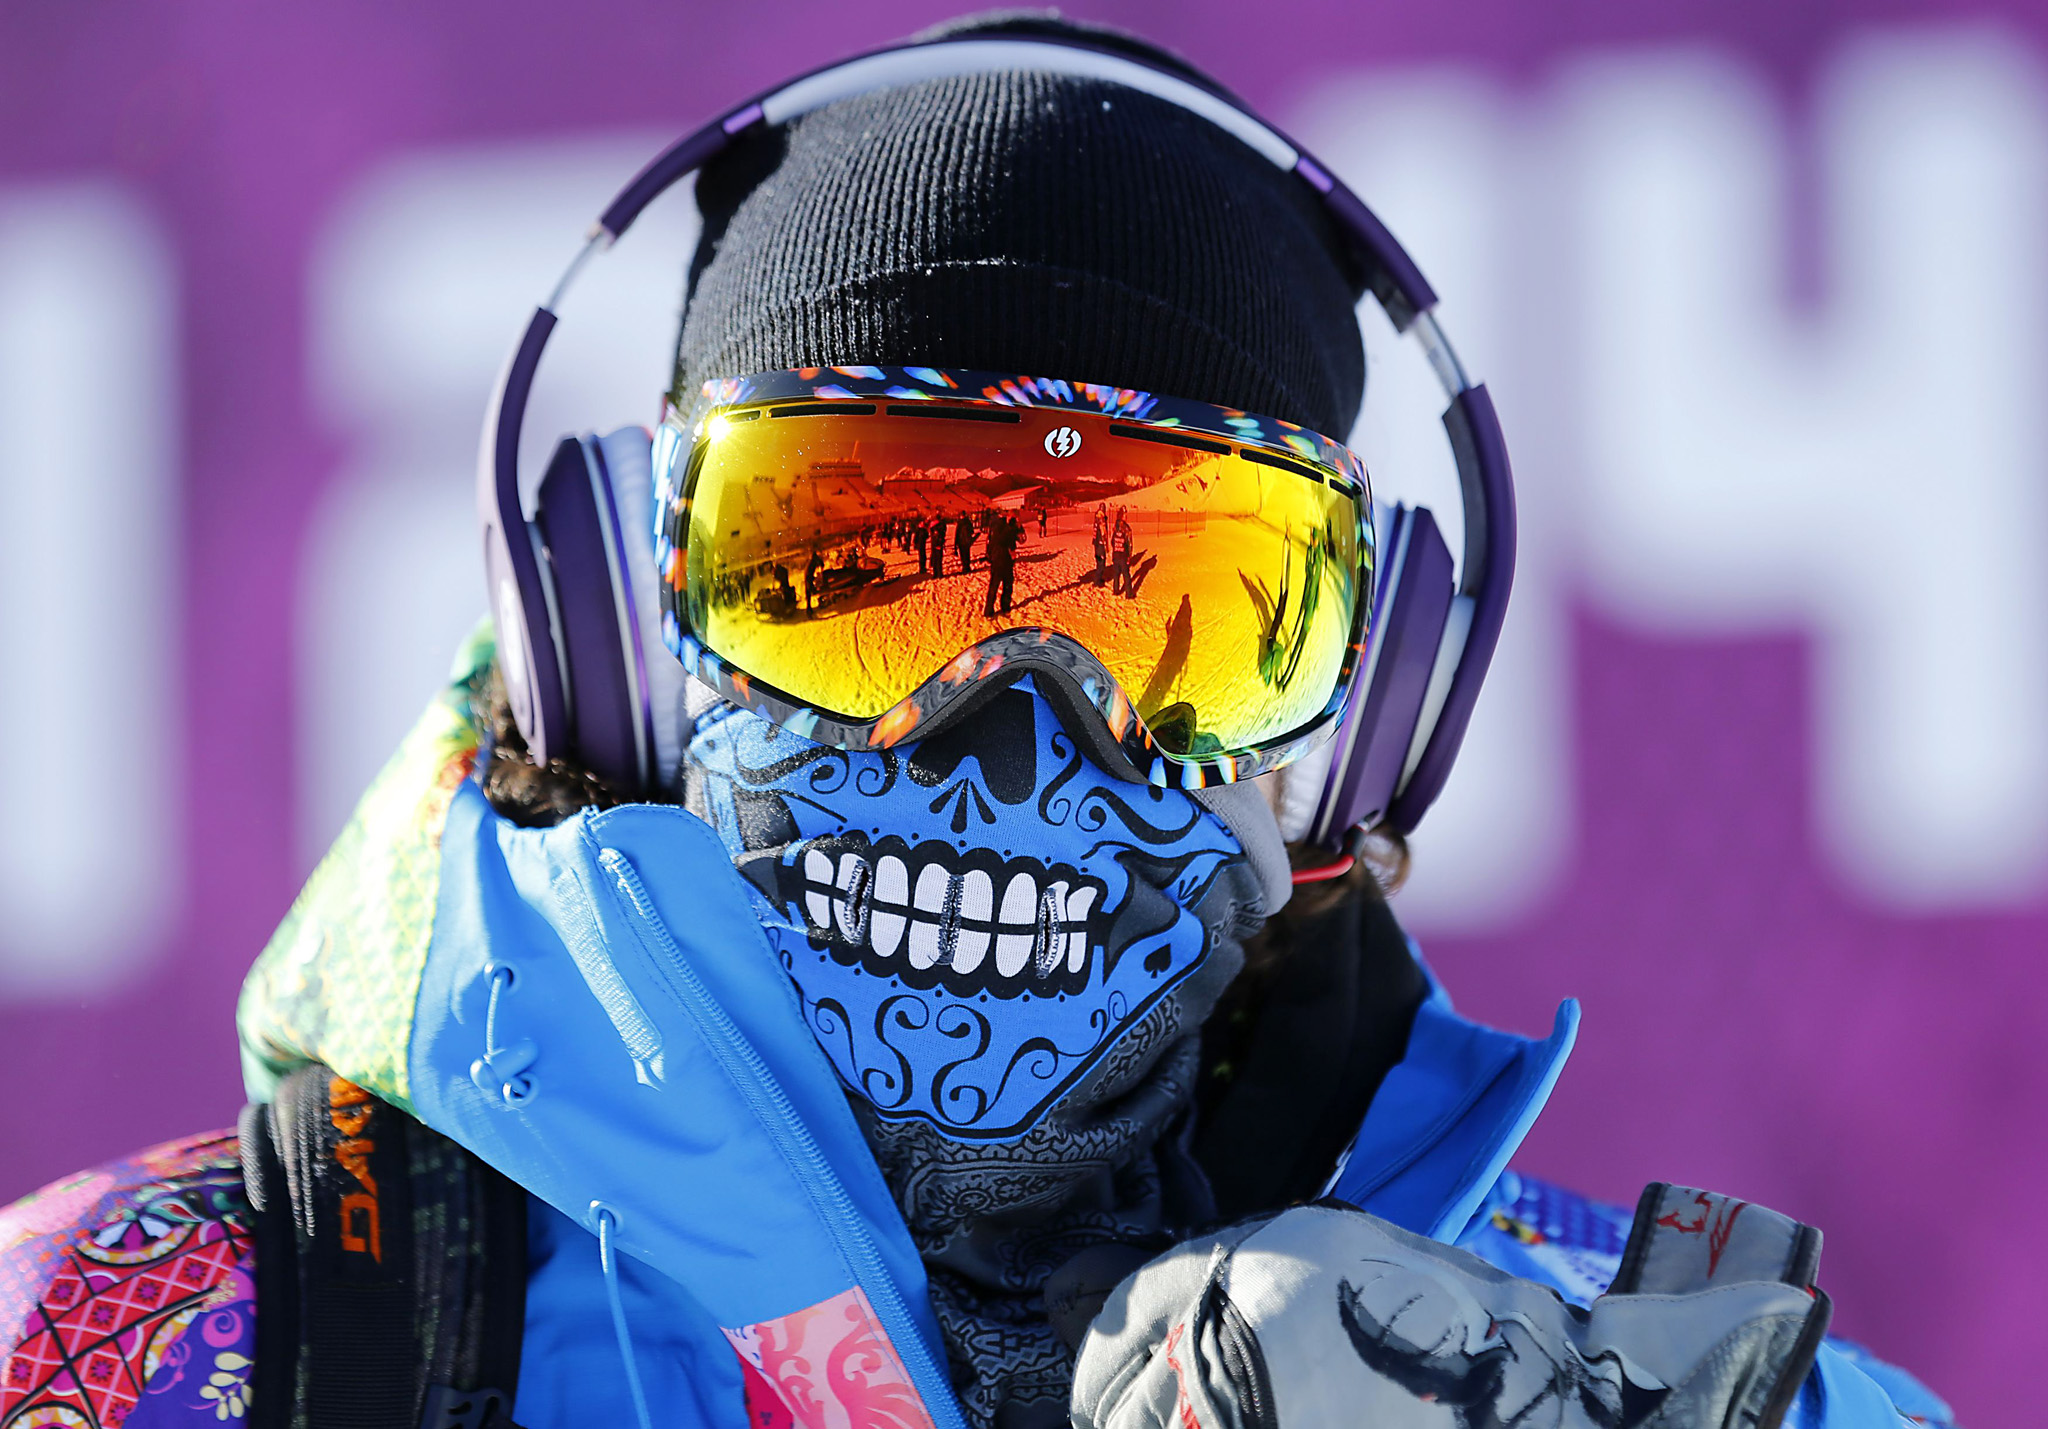 Course worker Svyatoslav Shirvel wears head phones and goggles during slopestyle snowboard training at the 2014 Sochi Winter Olympics in Rosa Khutor...Course worker Svyatoslav Shirvel wears head phones and goggles during slopestyle snowboard training at the 2014 Sochi Winter Olympics in Rosa Khutor February 3, 2014.    REUTERS/Mike Blake